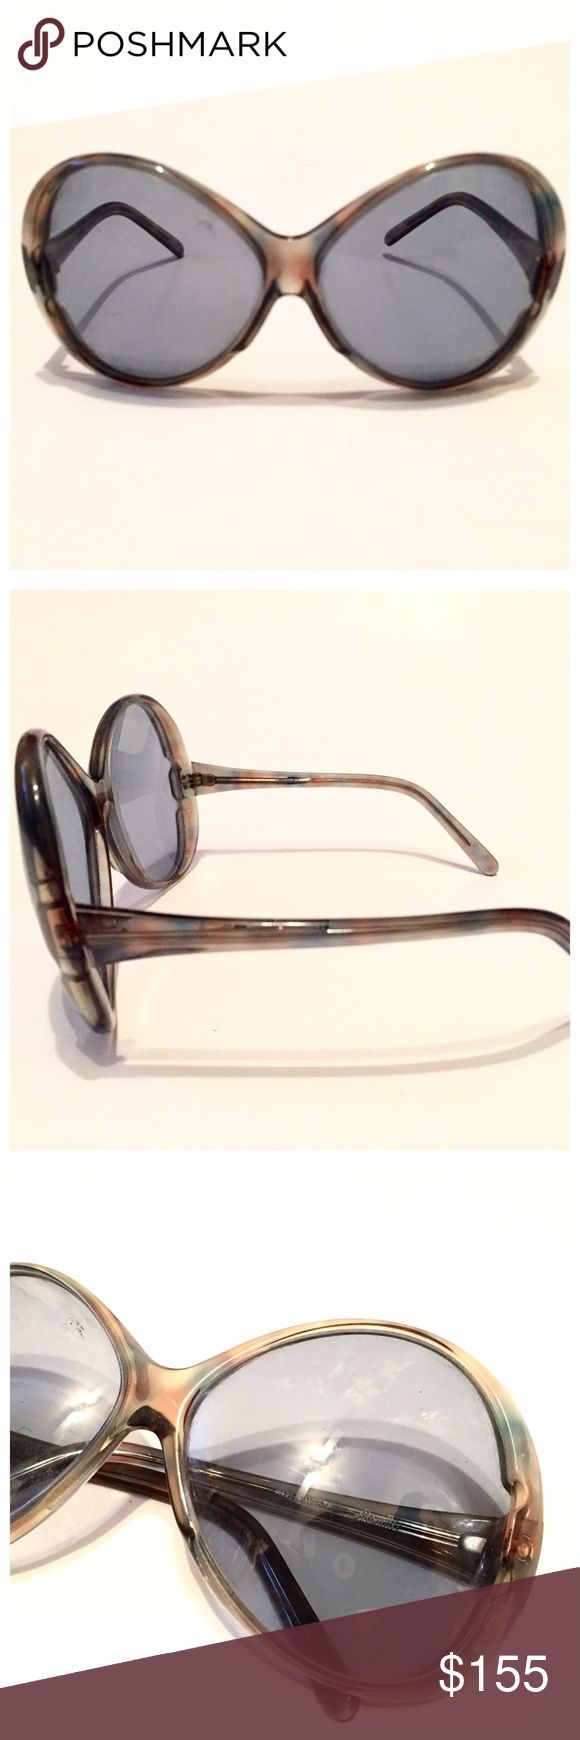 """Vintage Silouhette Sunglasses, Big Haute Shades ;) Another amazing pair of Silouhette Sunglasses for you. If you can't tell, they are one of my favorite vintage optical brands. Such good quality and their glasses are spot on fashionable rock stars! This pair is no exception. Overall great condition, no flaws to note. Measurements: 6"""" side to side and 2.75"""" top to bottom. Def good for going out incognito. Silhouette  Accessories Sunglasses"""